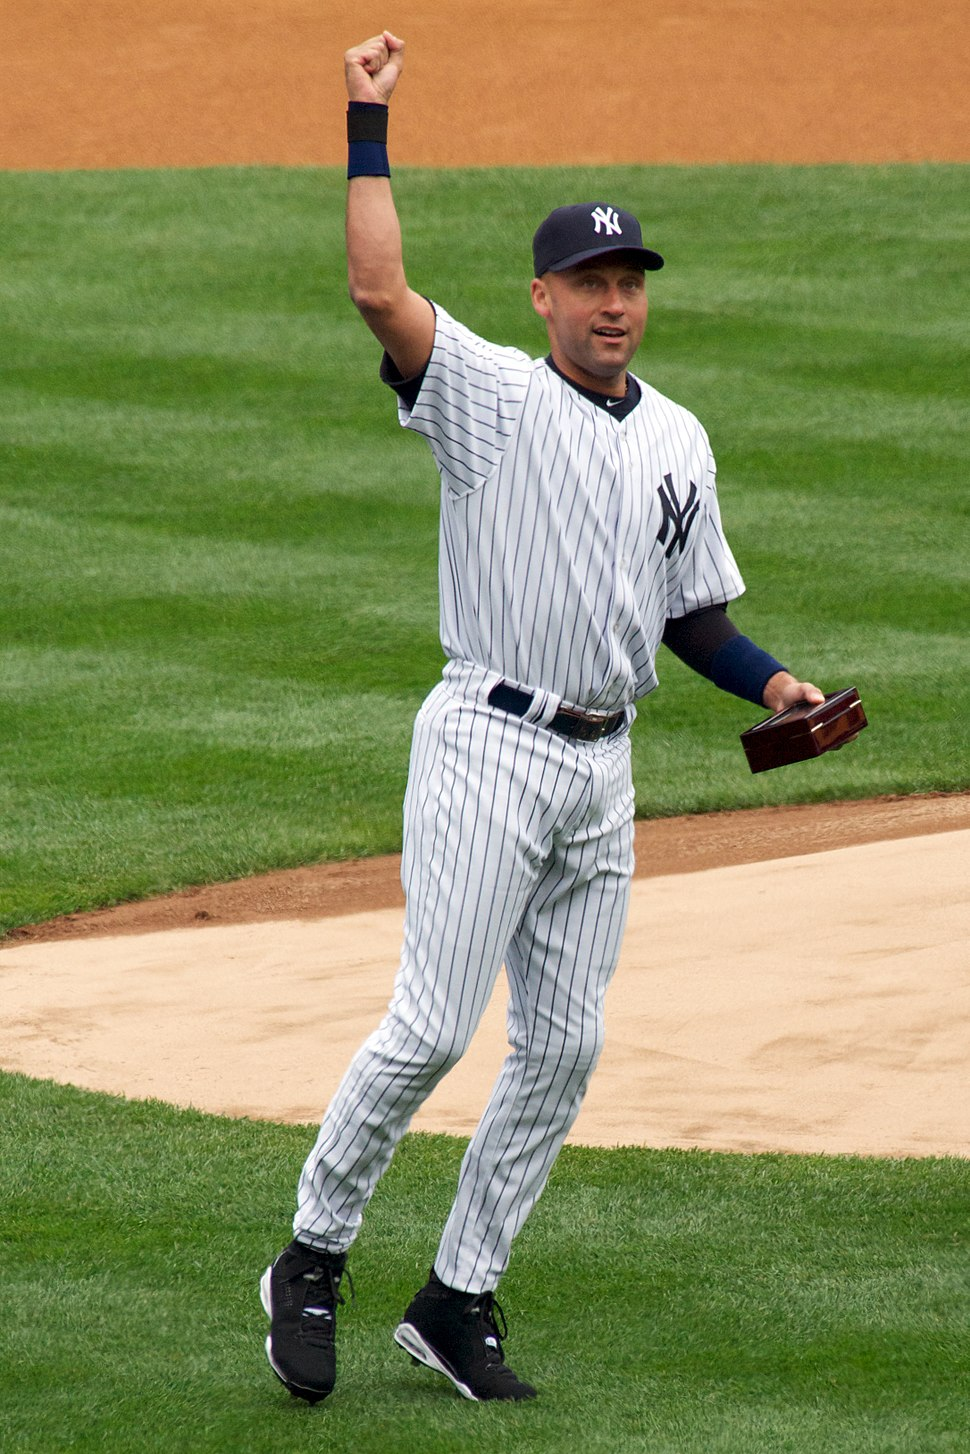 Jeter receives 2009 World Series Champion ring